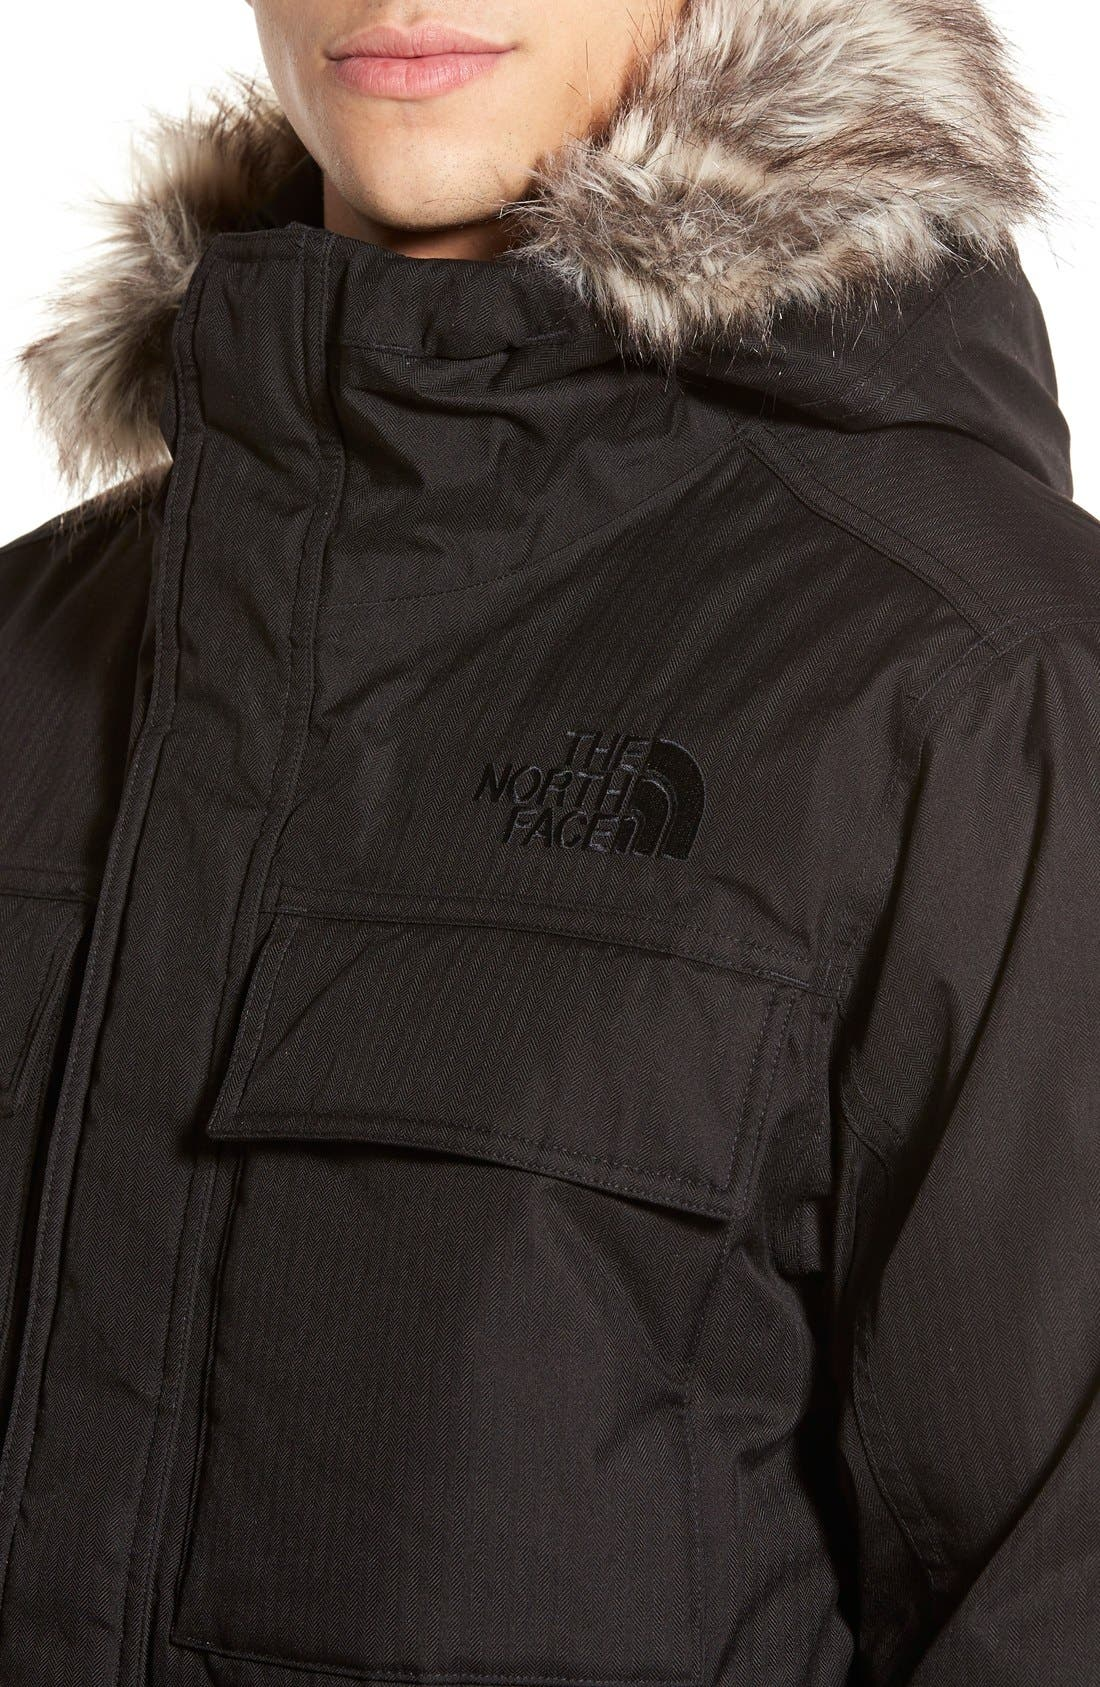 'Gotham II' Hooded Goose Down Jacket with Faux Fur Trim,                             Alternate thumbnail 3, color,                             001